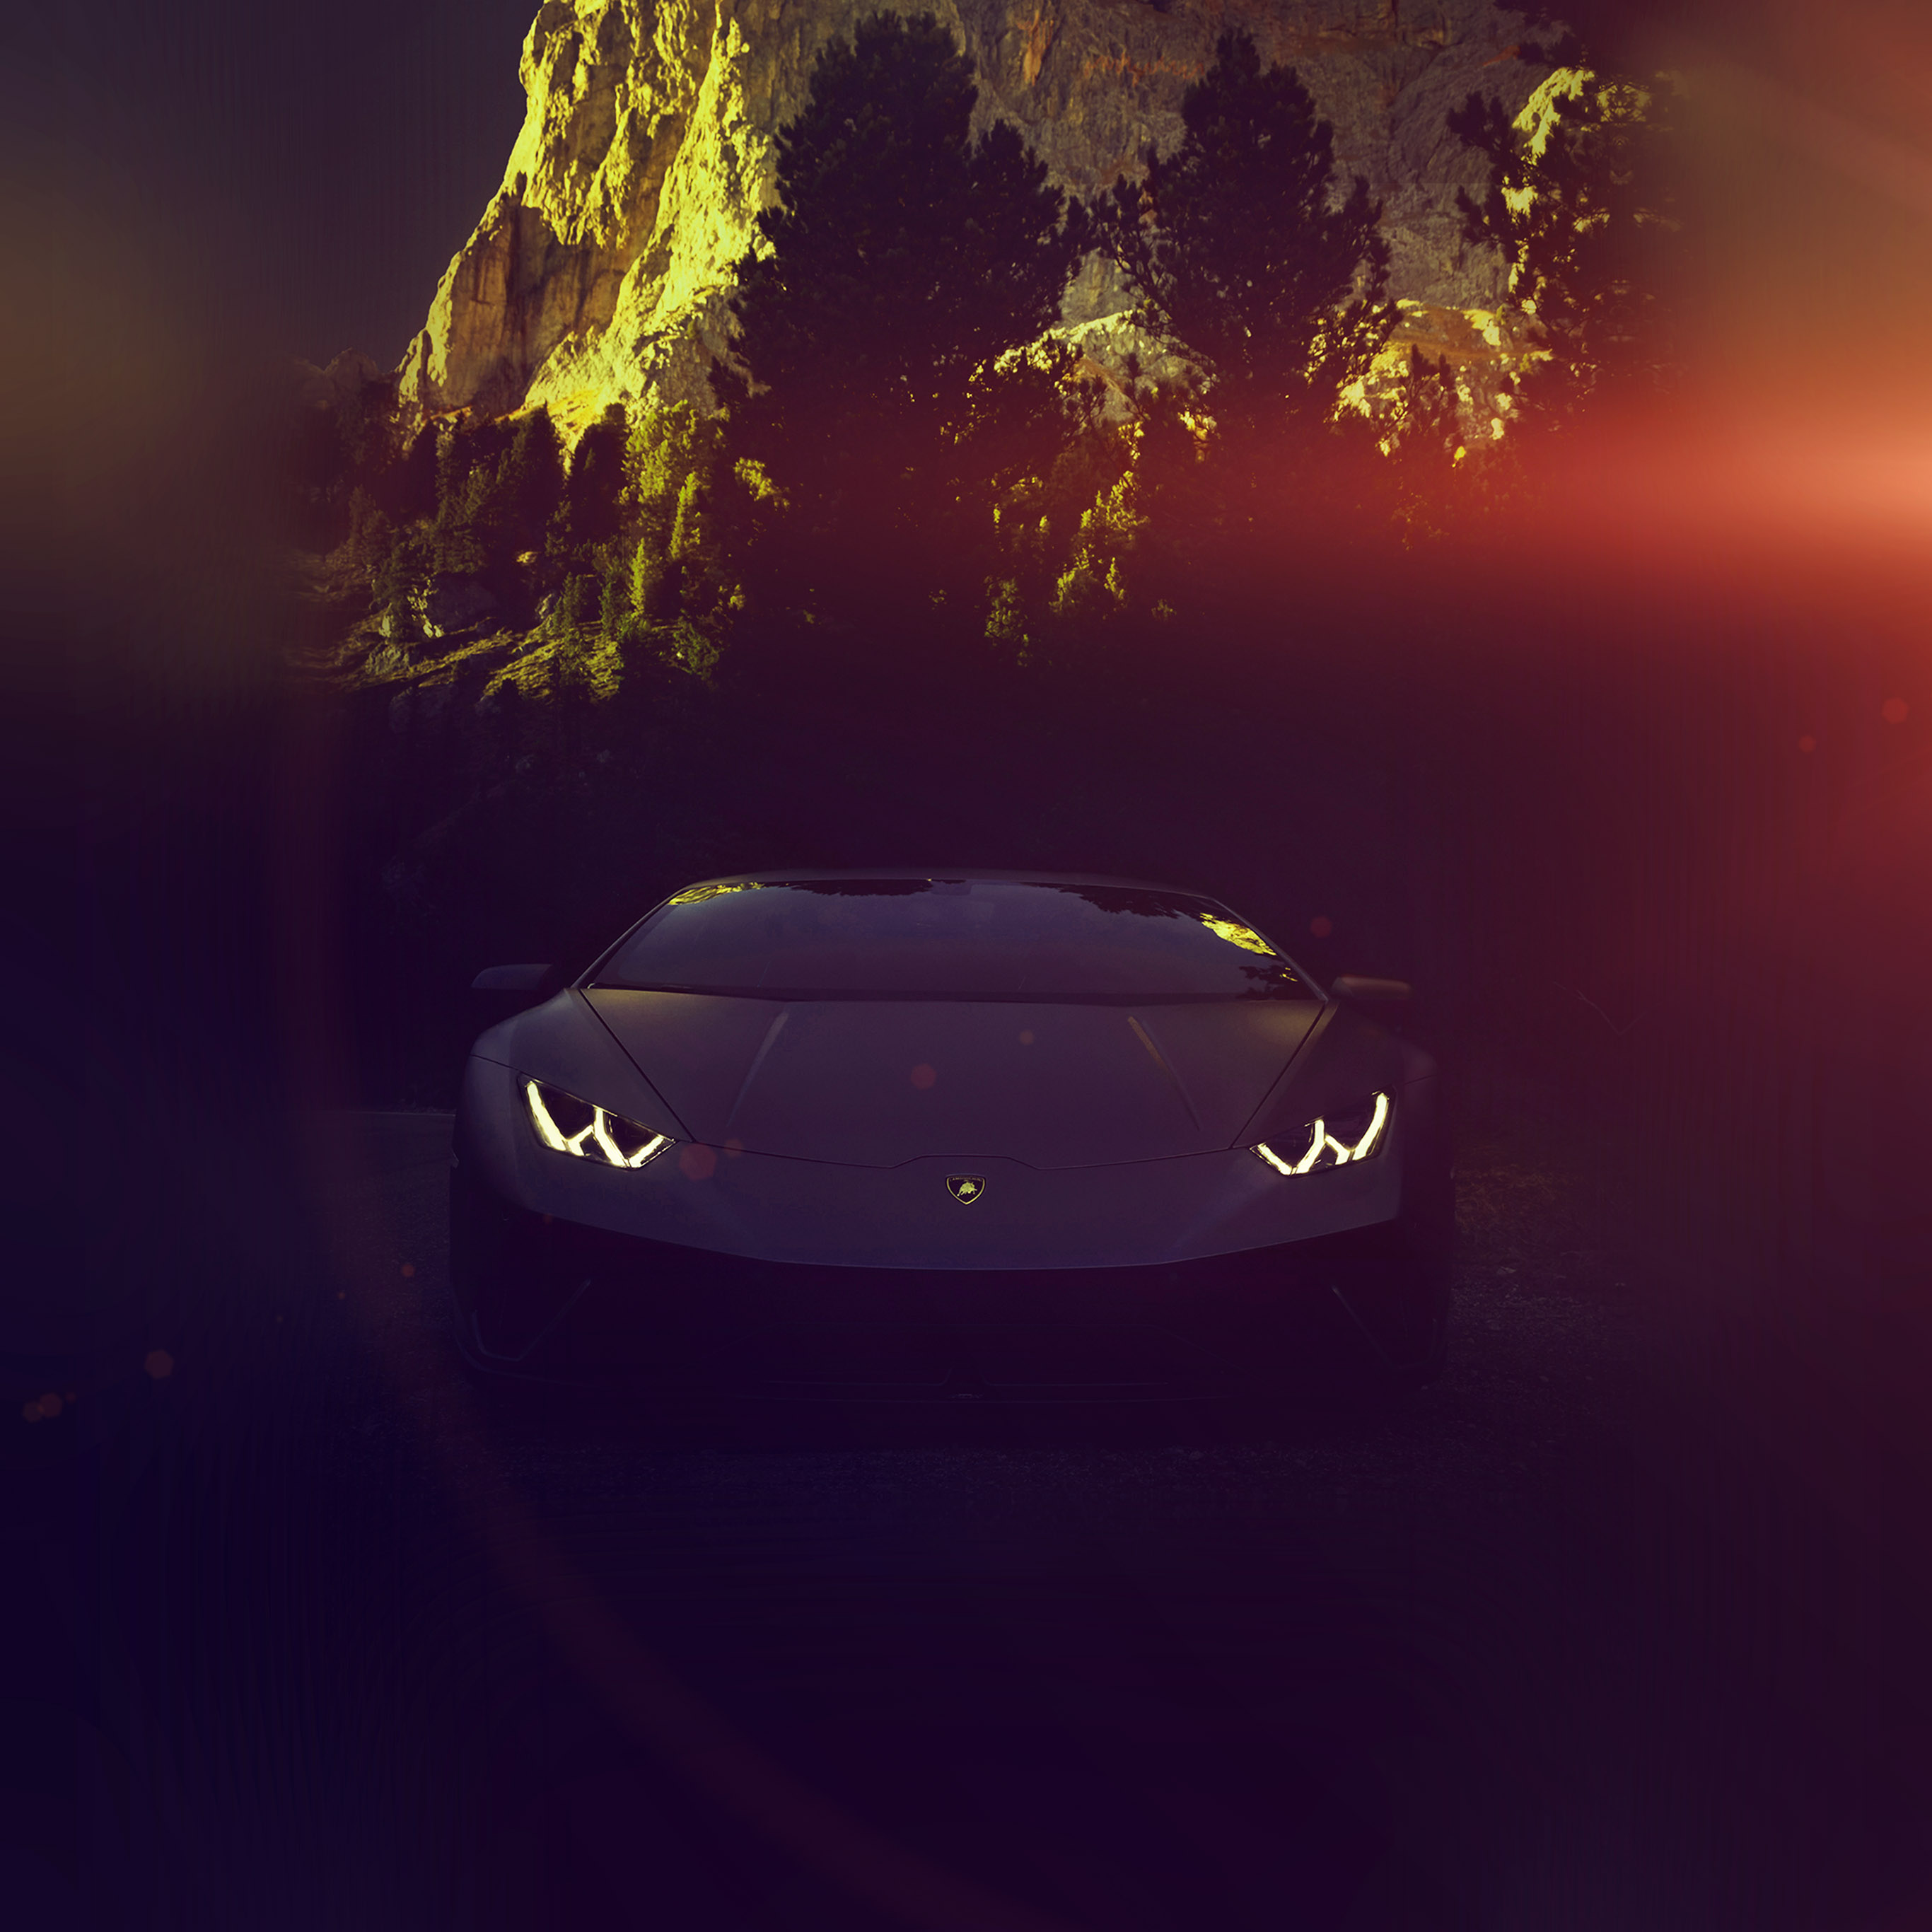 papers.co be99 car lamborghini dark city art flare 40 wallpaper